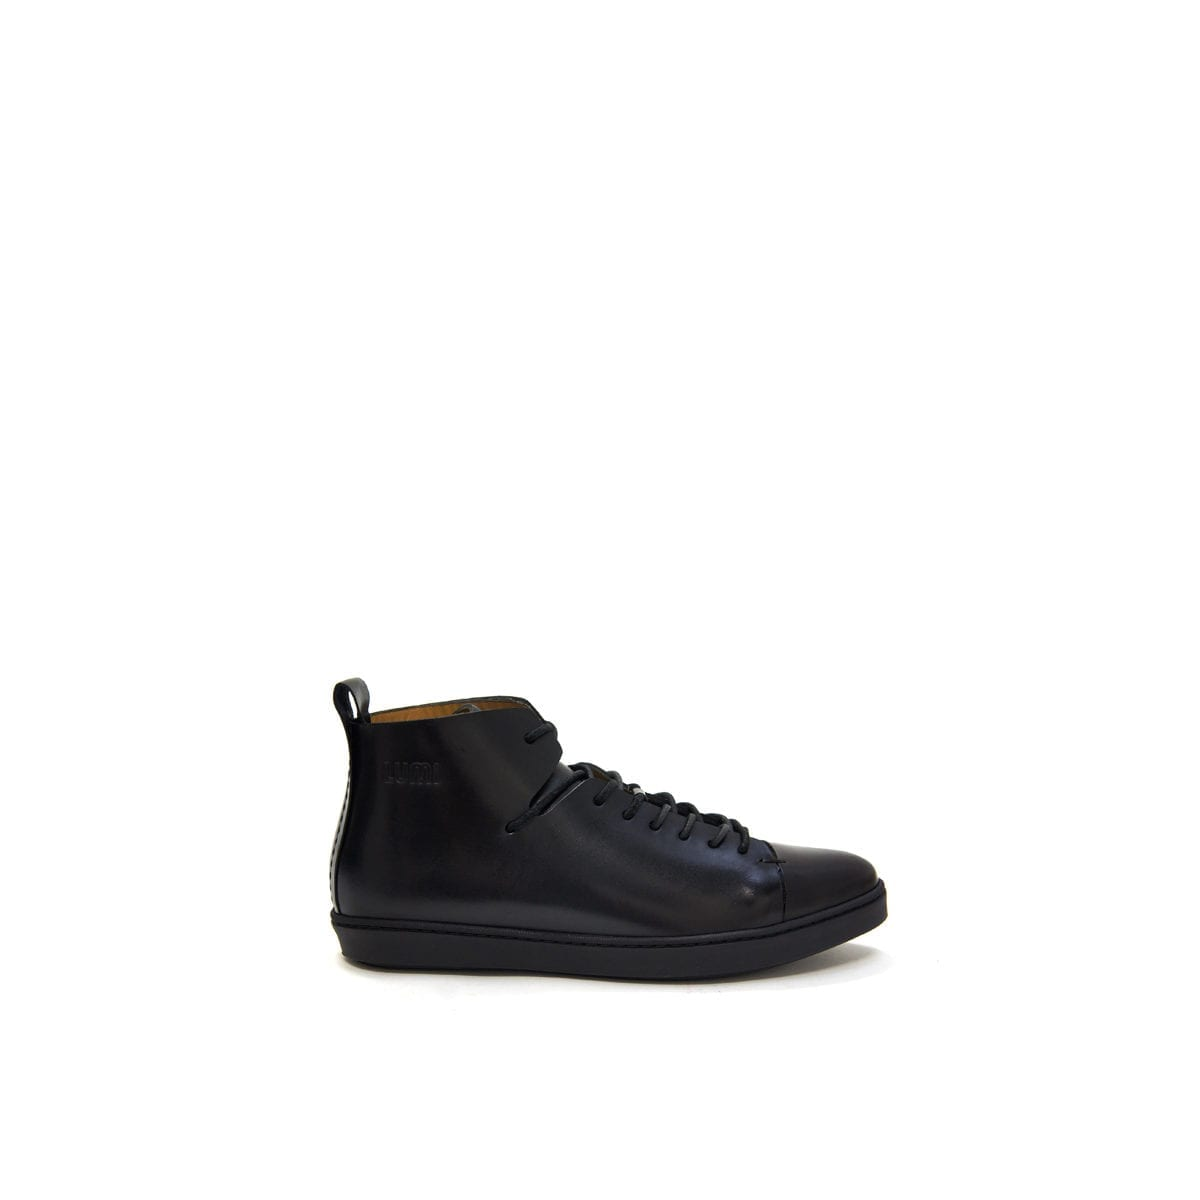 LUMI Tuulia Derby Shoe, in black.